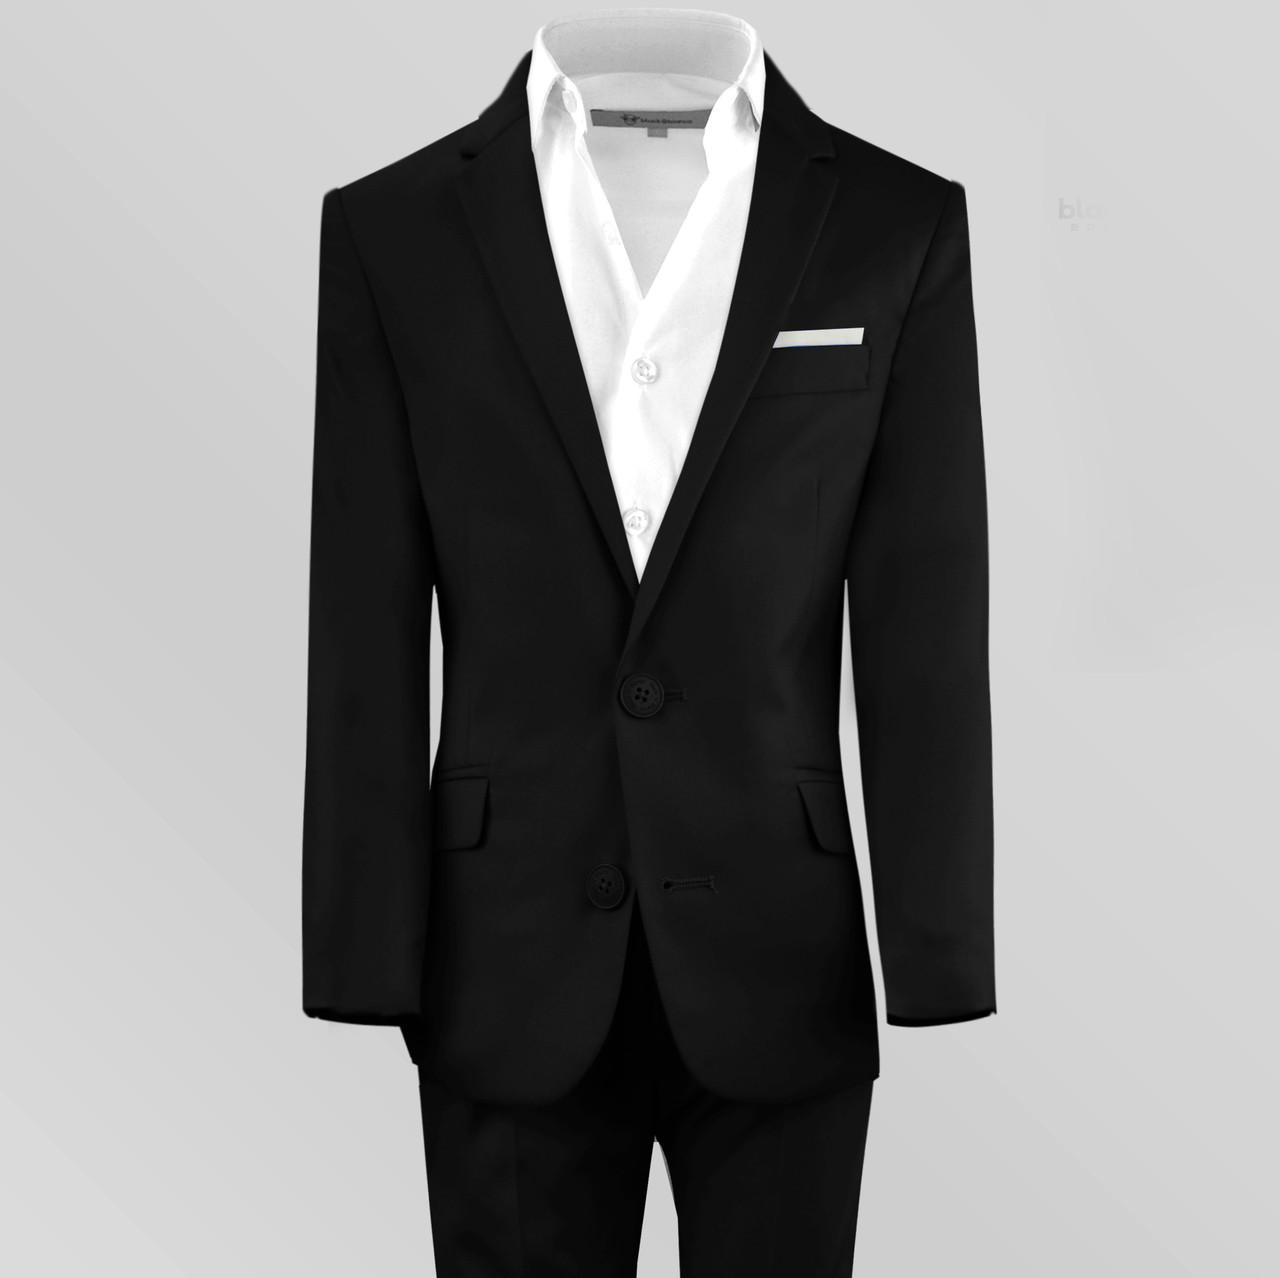 949c3f555 Black n Bianco First Class Midnight Black Slim Fit Suit for Boys and ...